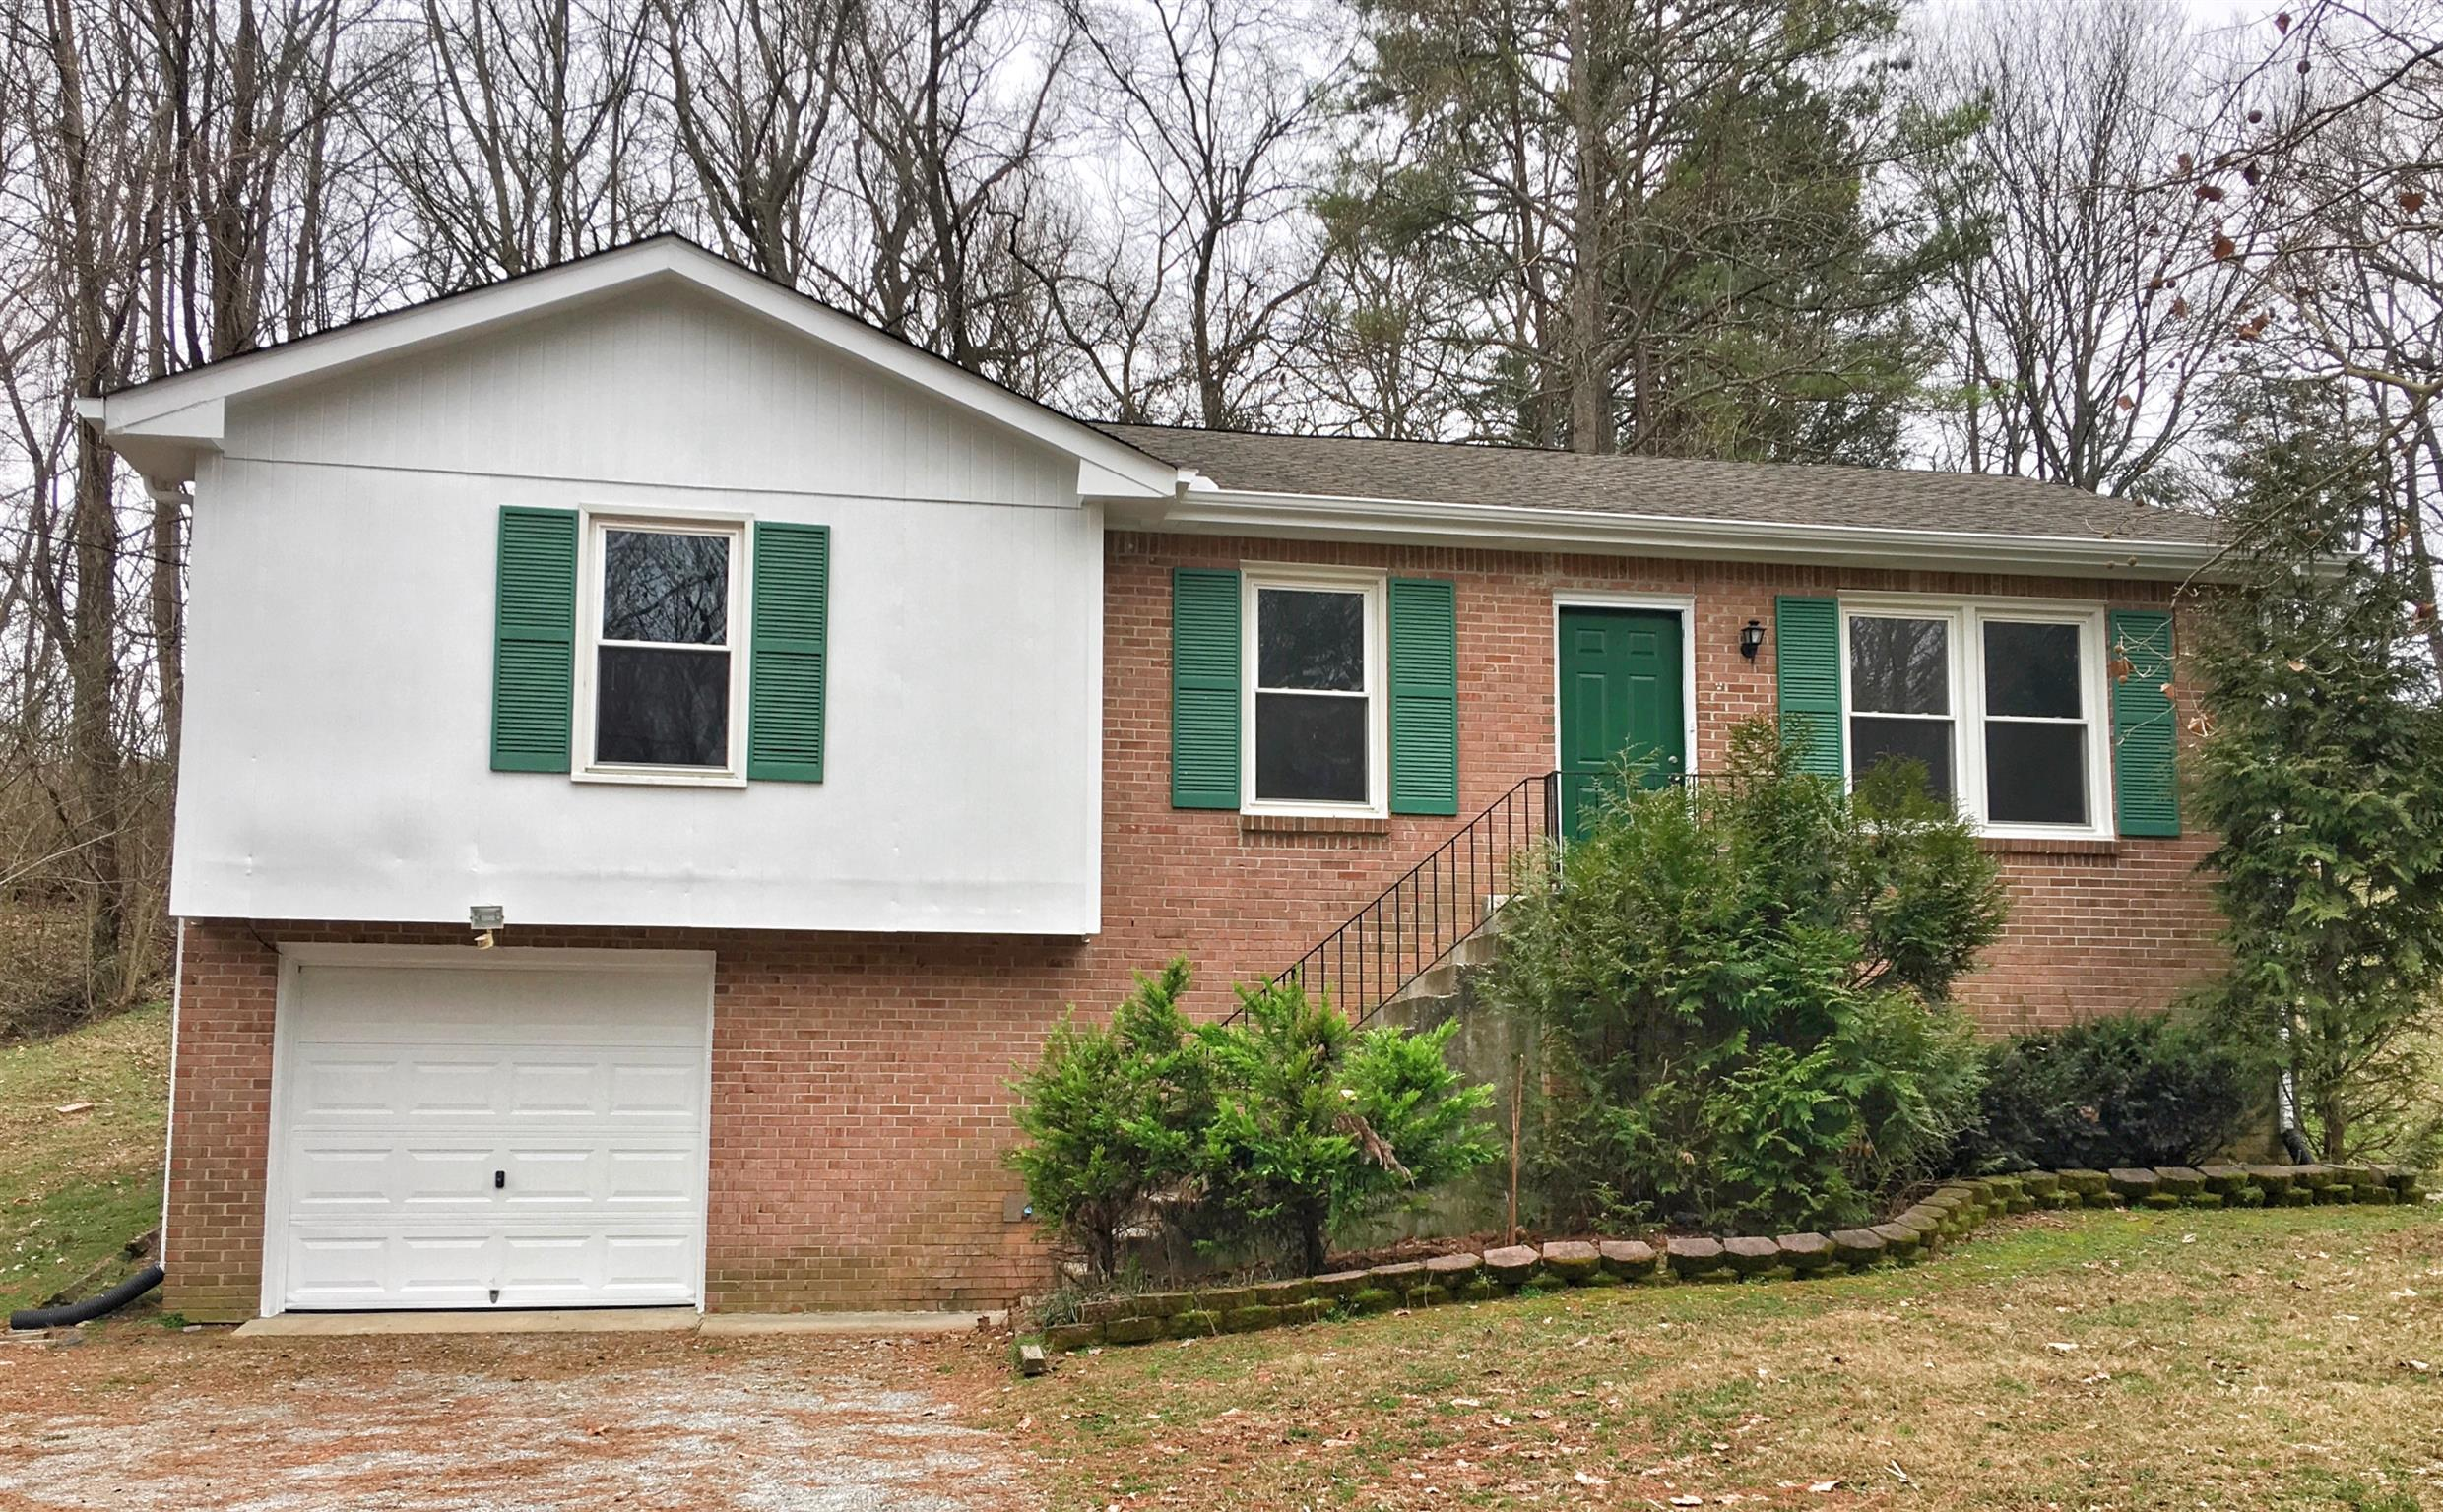 684 Frankfort Dr, Hermitage in Davidson County County, TN 37076 Home for Sale